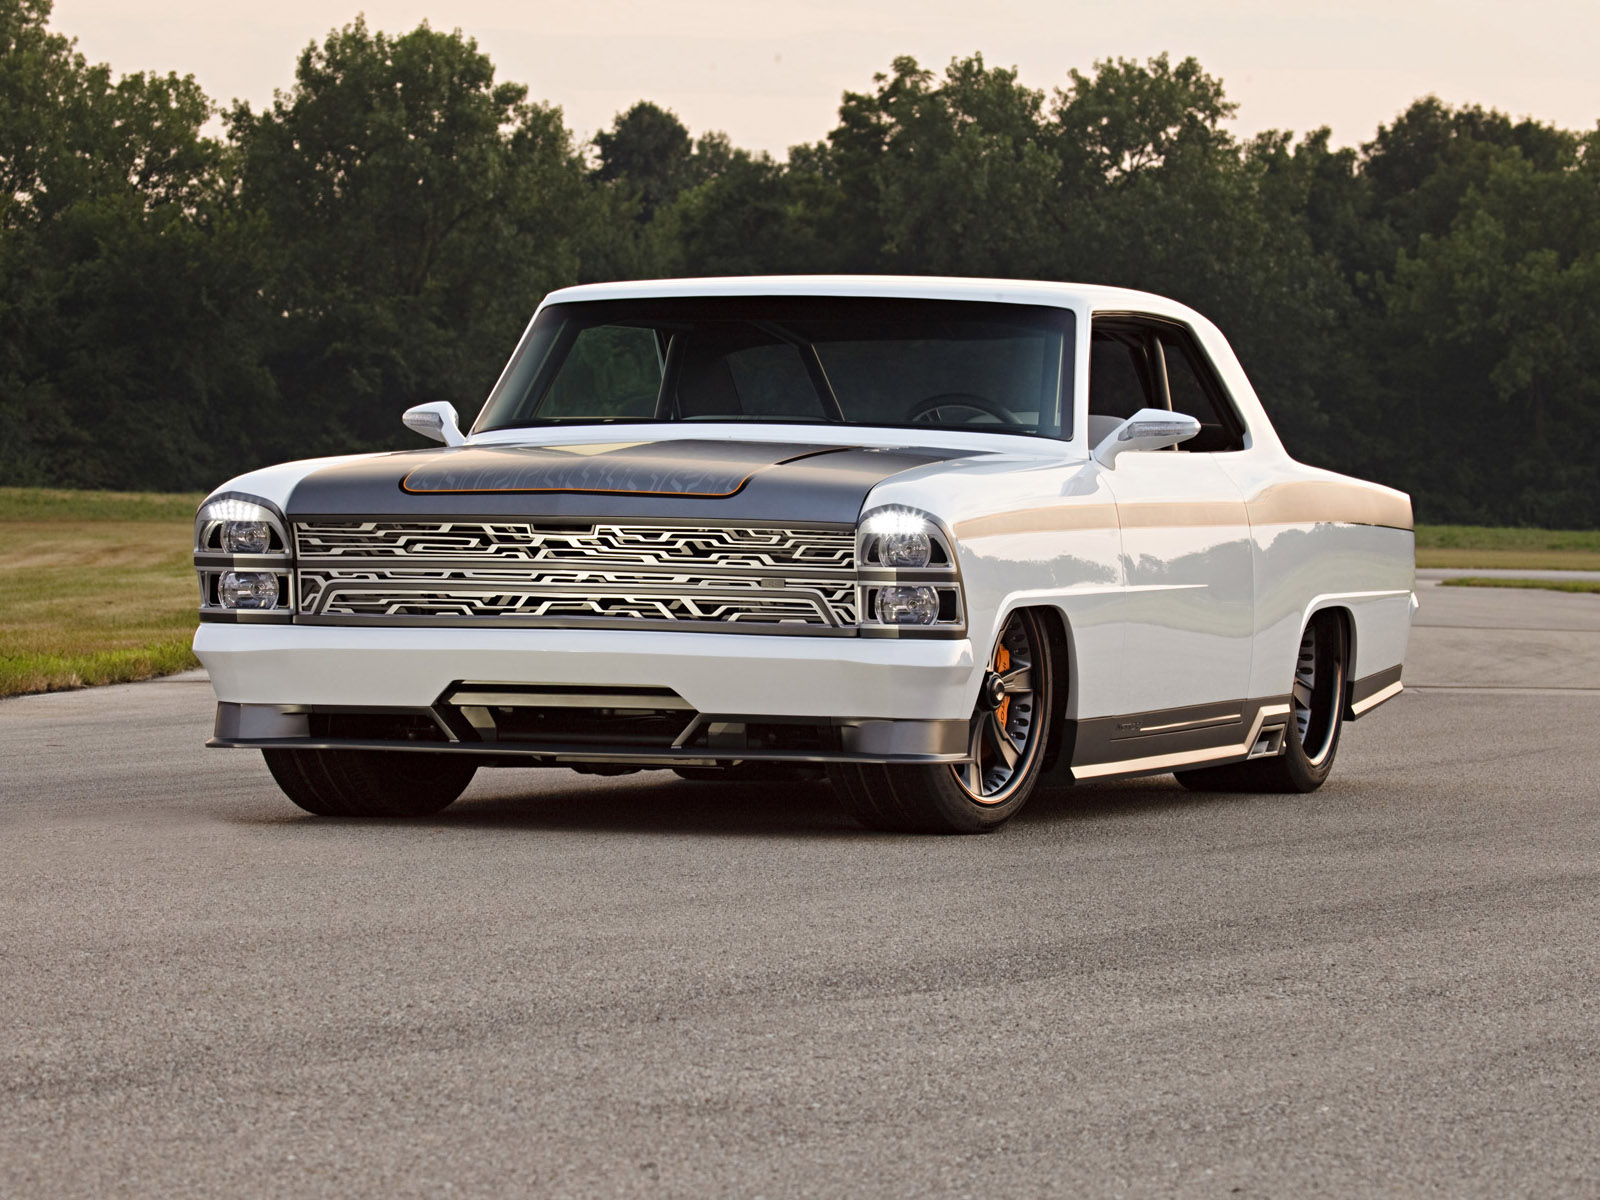 Chevy classic hot rod